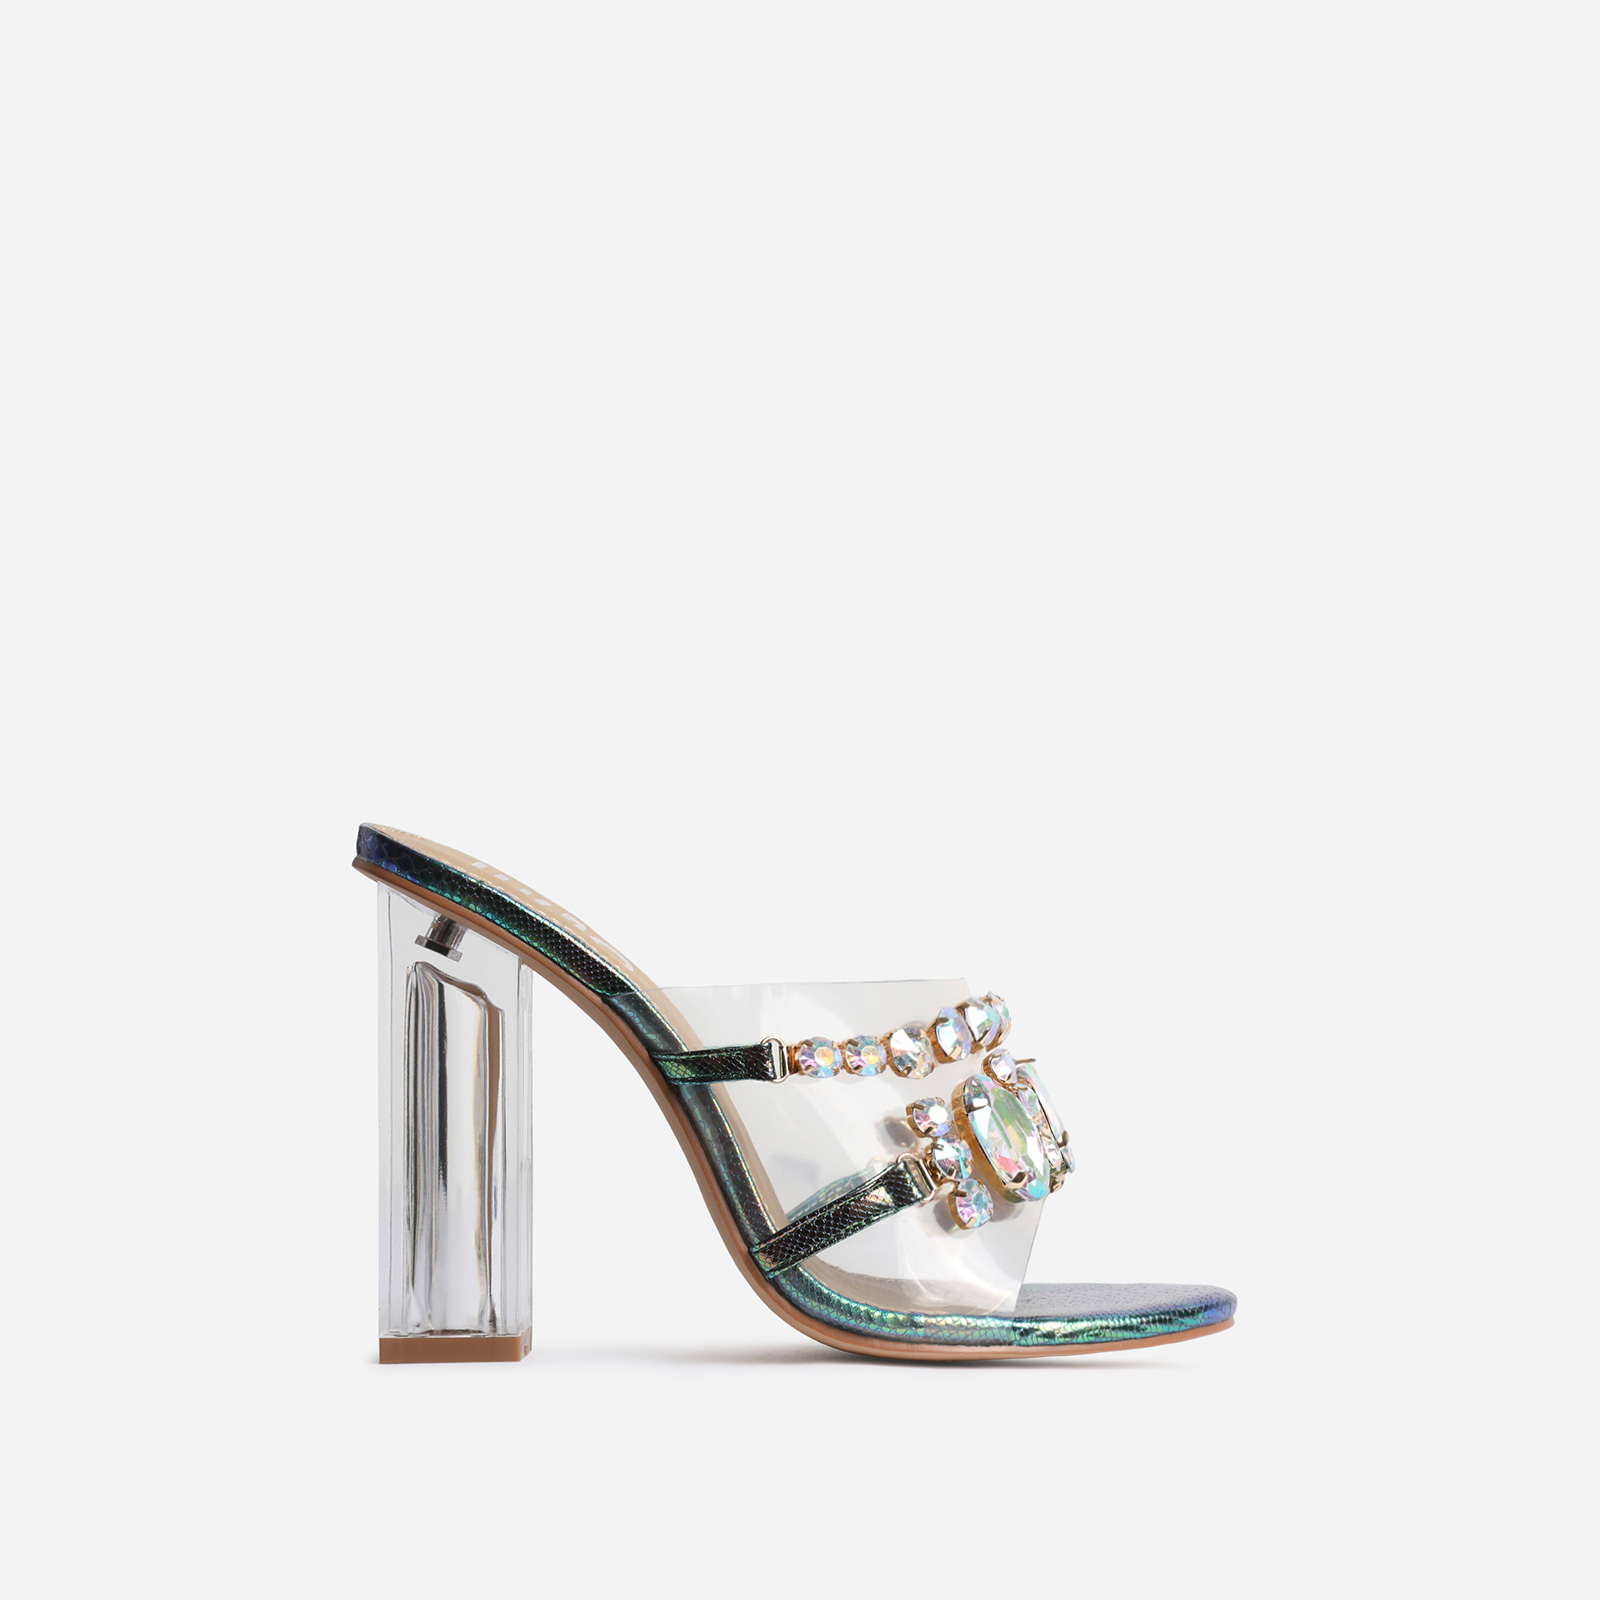 Frost Gem Embellished Clear Perspex Peep Toe Block Heel Mule In Green Snake Print Faux Leather